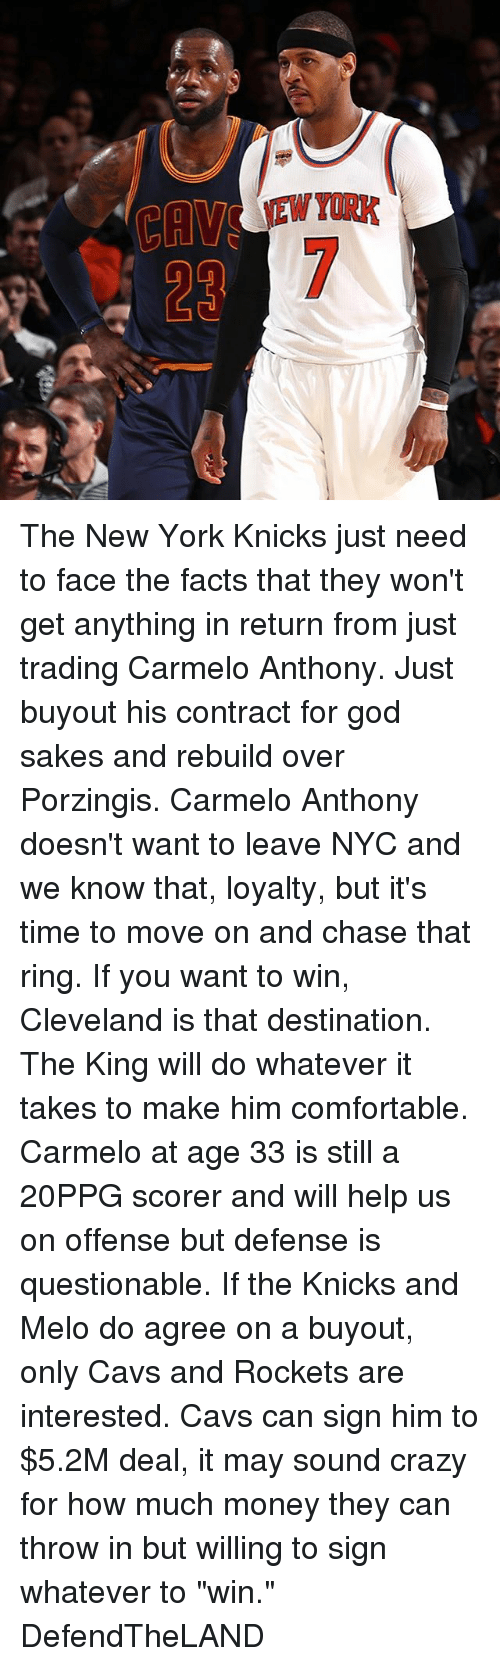 "Carmelo Anthony, Cavs, and Comfortable: The New York Knicks just need to face the facts that they won't get anything in return from just trading Carmelo Anthony. Just buyout his contract for god sakes and rebuild over Porzingis. Carmelo Anthony doesn't want to leave NYC and we know that, loyalty, but it's time to move on and chase that ring. If you want to win, Cleveland is that destination. The King will do whatever it takes to make him comfortable. Carmelo at age 33 is still a 20PPG scorer and will help us on offense but defense is questionable. If the Knicks and Melo do agree on a buyout, only Cavs and Rockets are interested. Cavs can sign him to $5.2M deal, it may sound crazy for how much money they can throw in but willing to sign whatever to ""win."" DefendTheLAND"